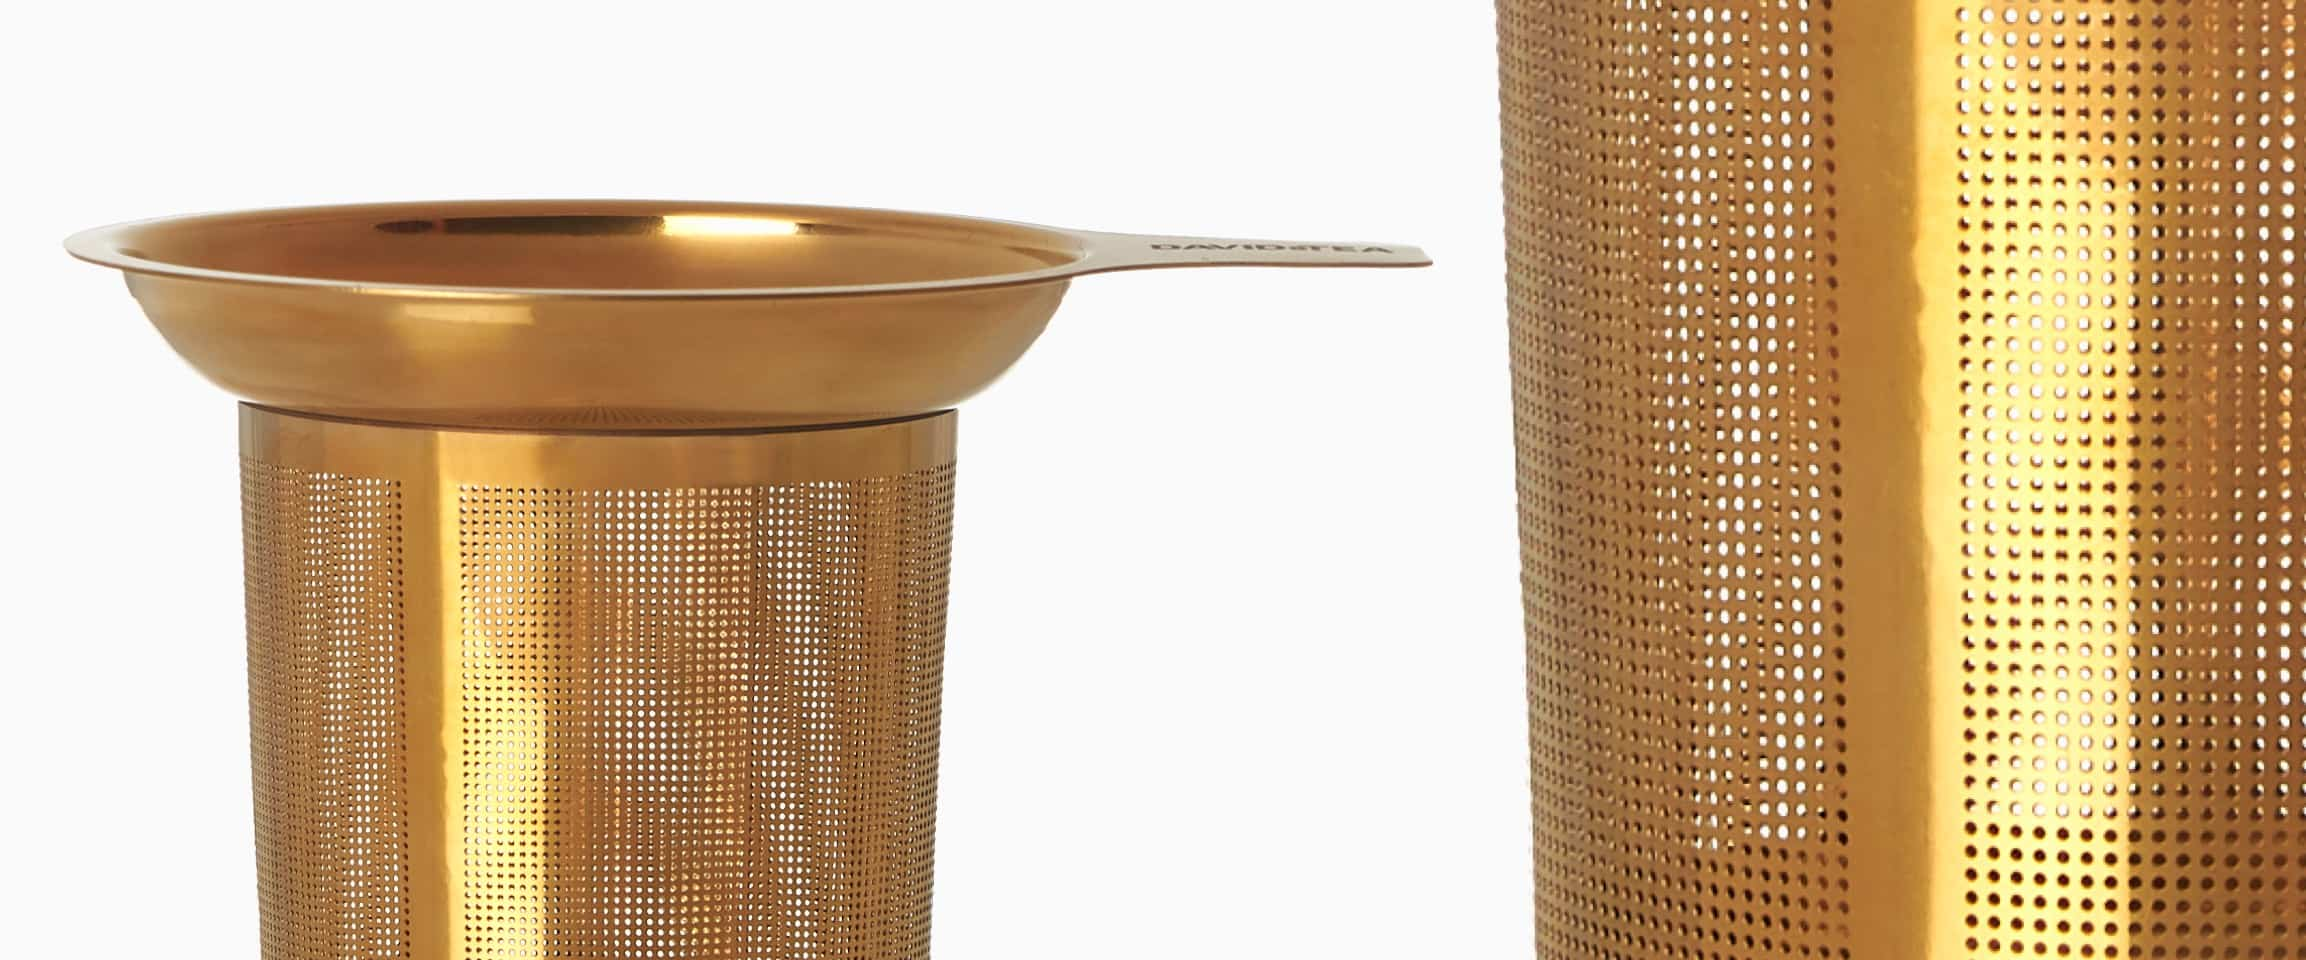 Zoomed-in view of the gold Perfect Infuser.